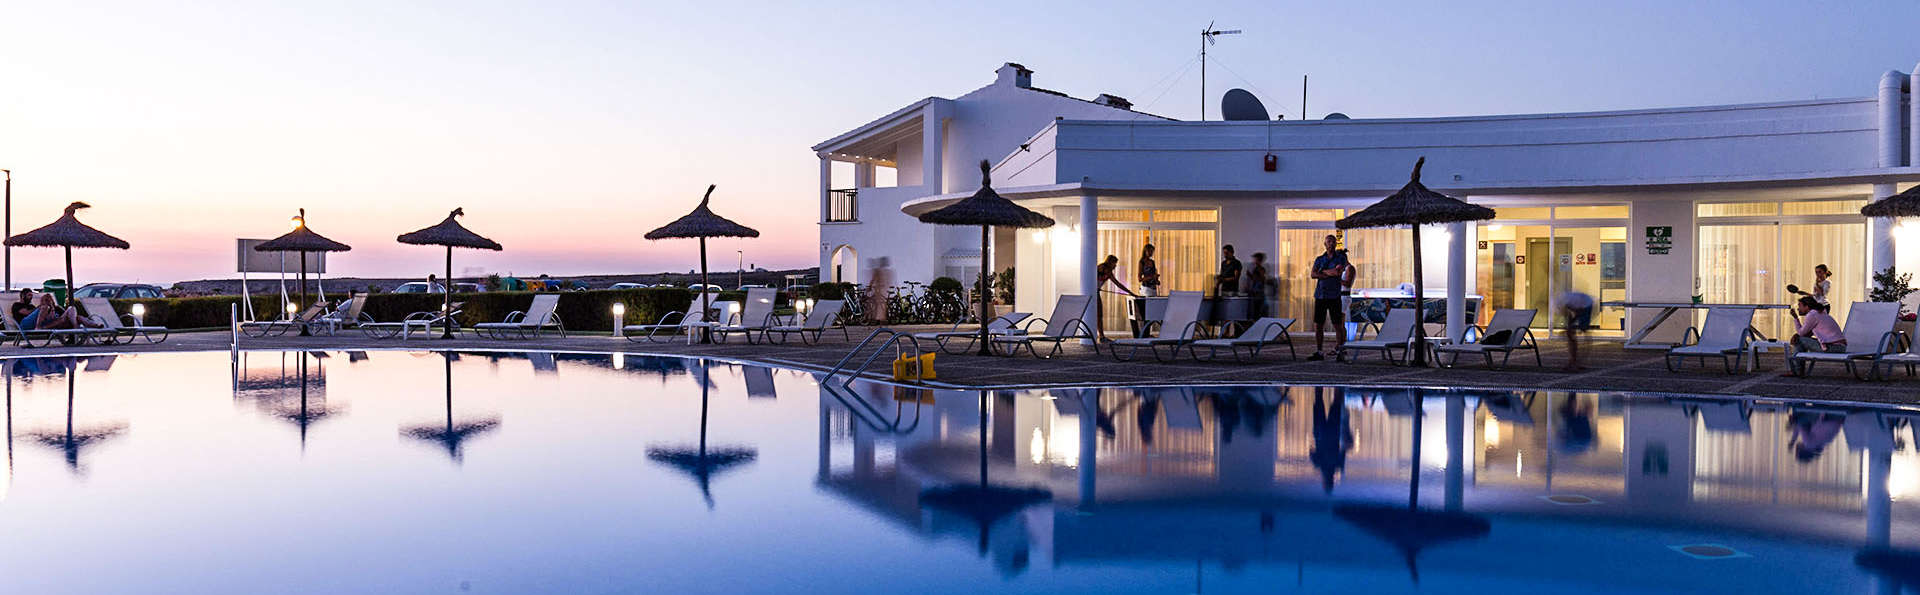 RVHotels Sea Club Menorca - EDIT_RvHotel_SeaClub_Nocturnas_01.jpg